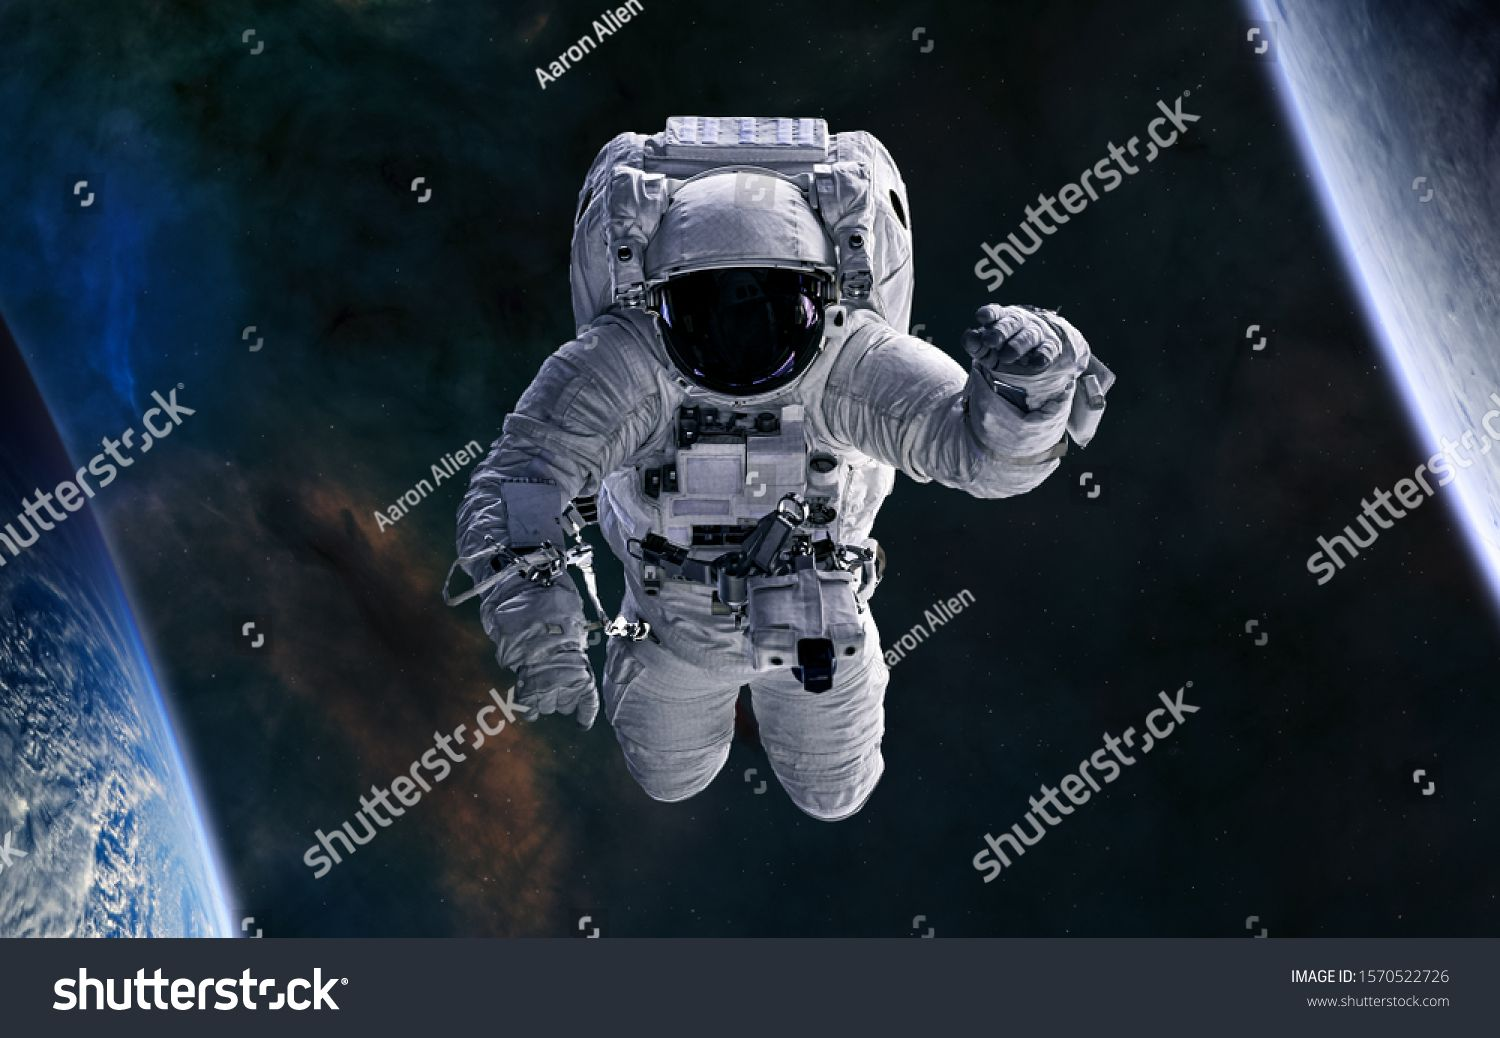 Astronaut In Open Space Science Fiction Elements Of This Image